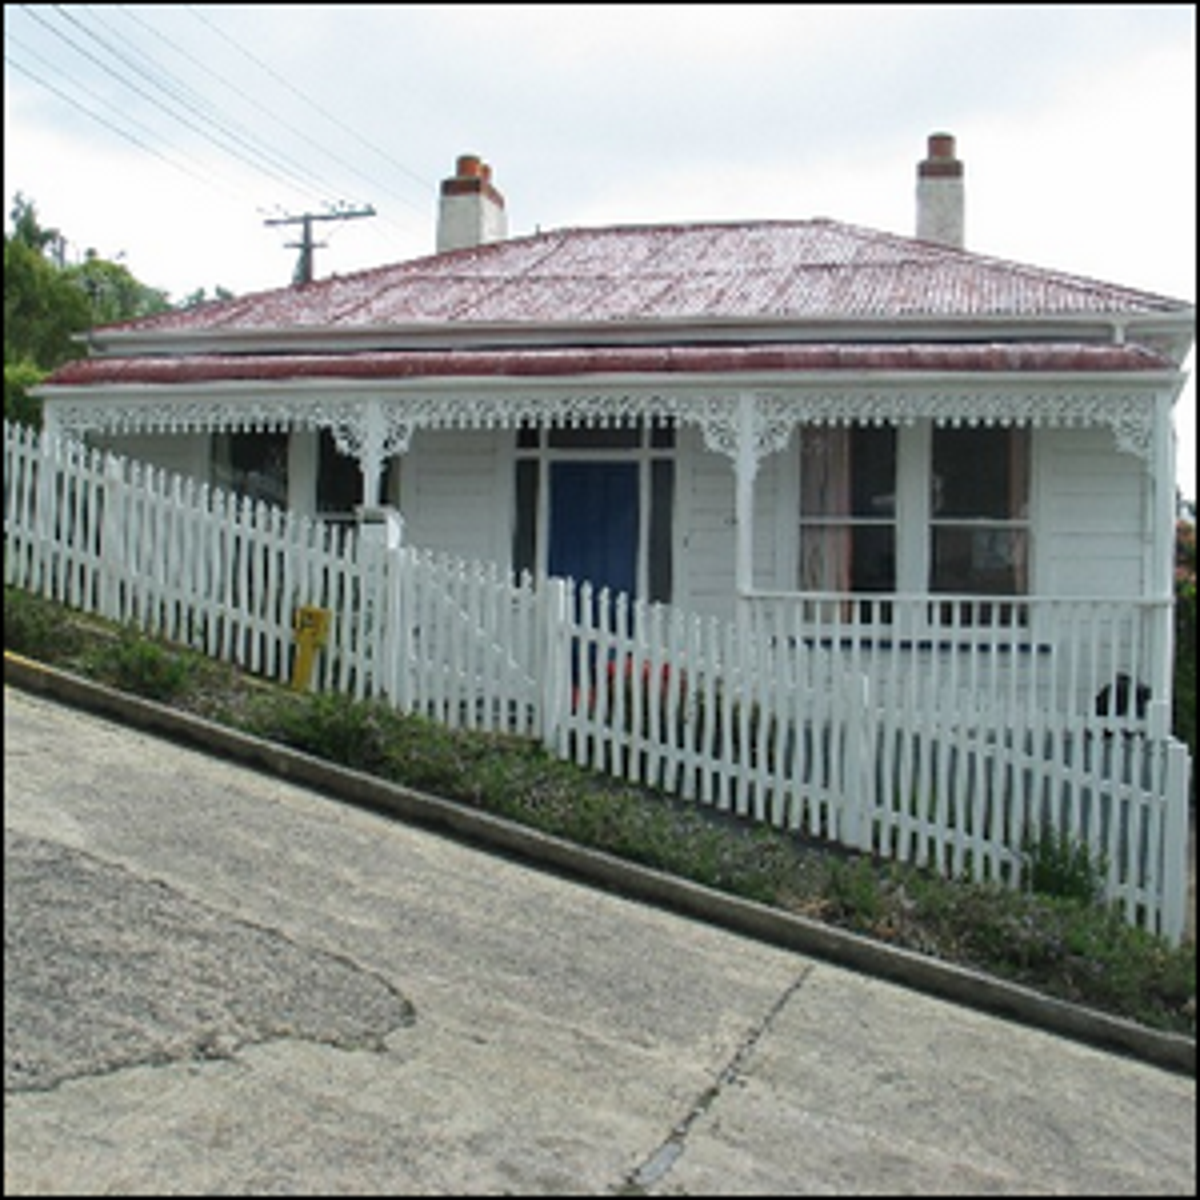 Photo of a house on Baldwin Street, the steepest street in the world.